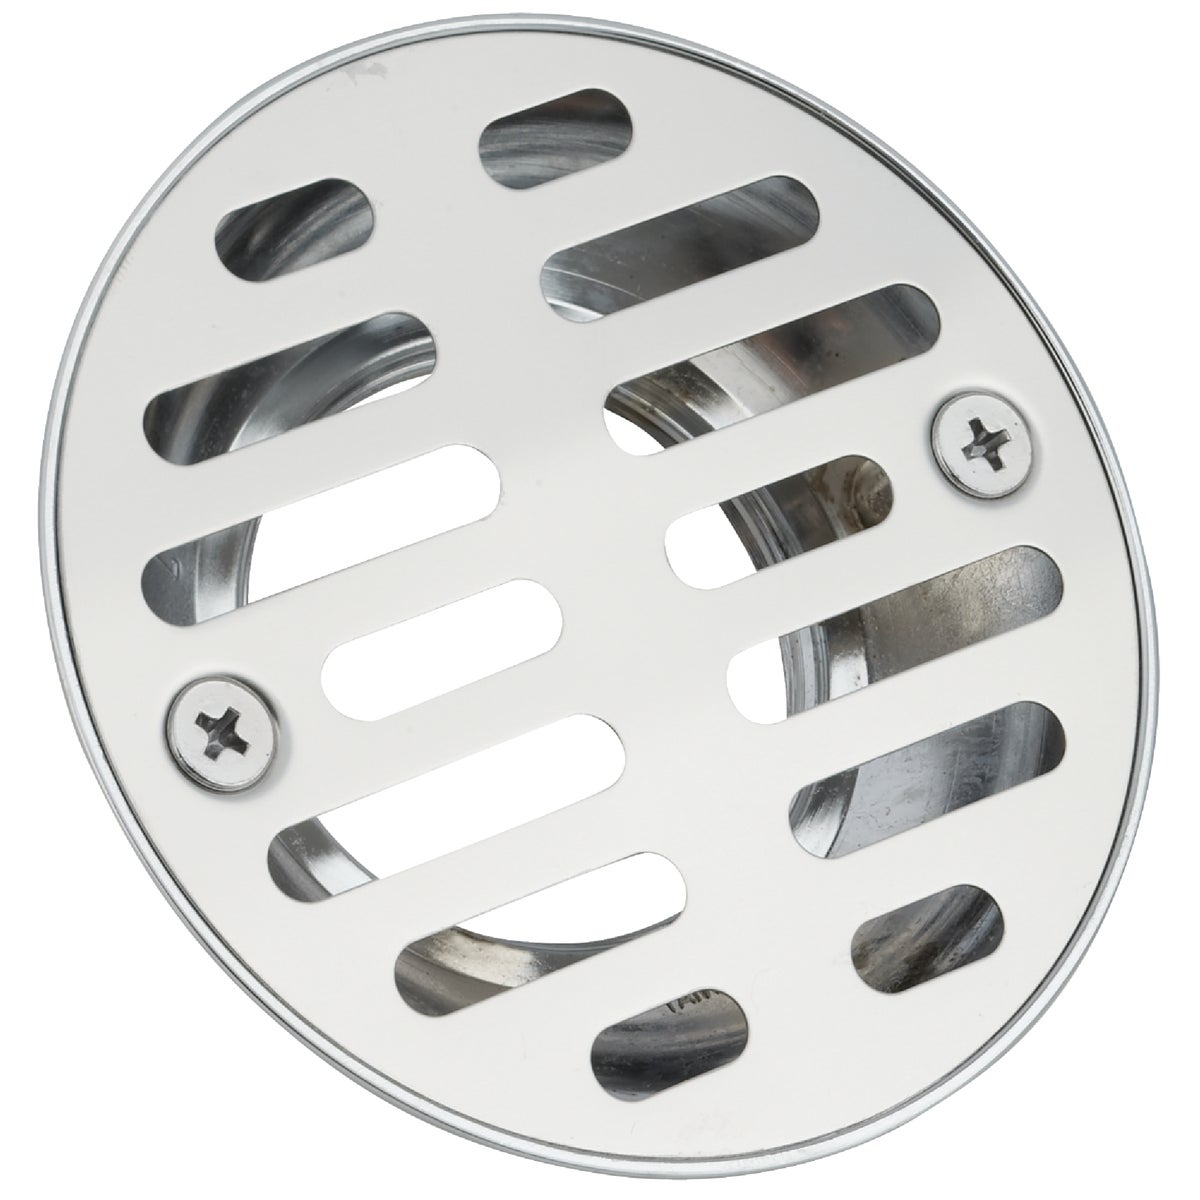 "1-1/2"" SHOWER DRAIN - 415642 by Do it Best"